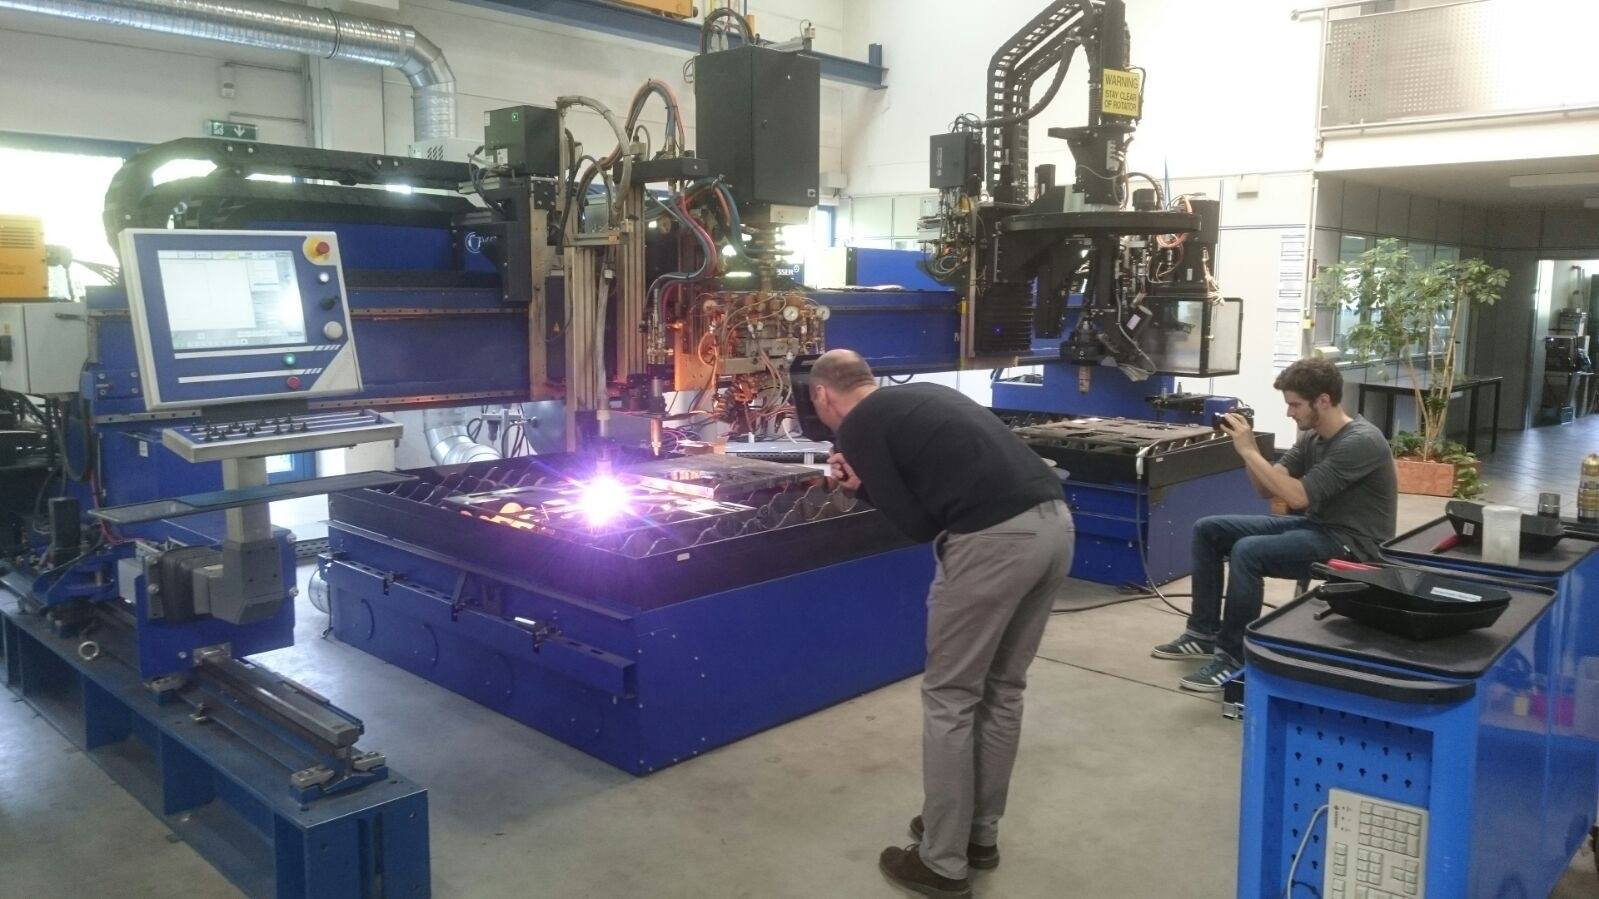 Autogentechnik Dreharbeiten bei Messer Cutting Systems_2 Blog